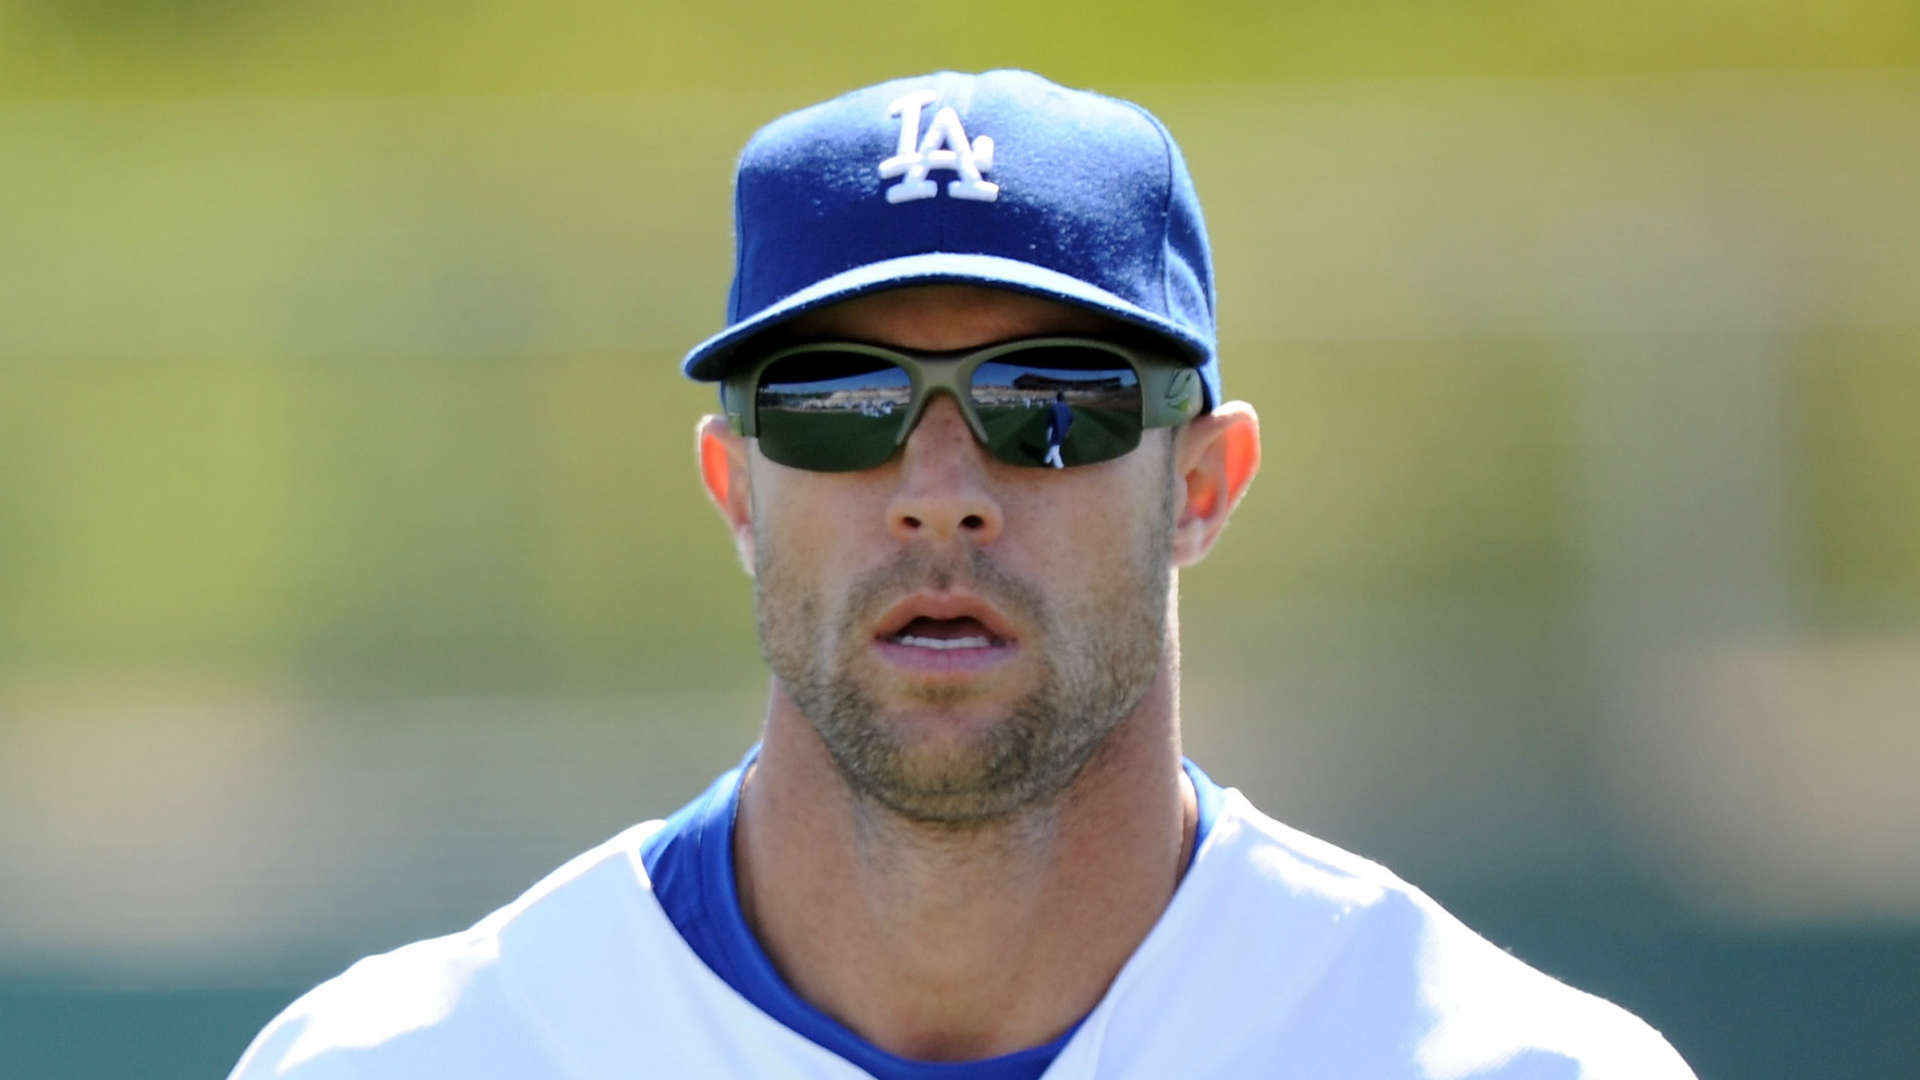 Phillies hire Dodgers executive Gabe Kapler as next manager